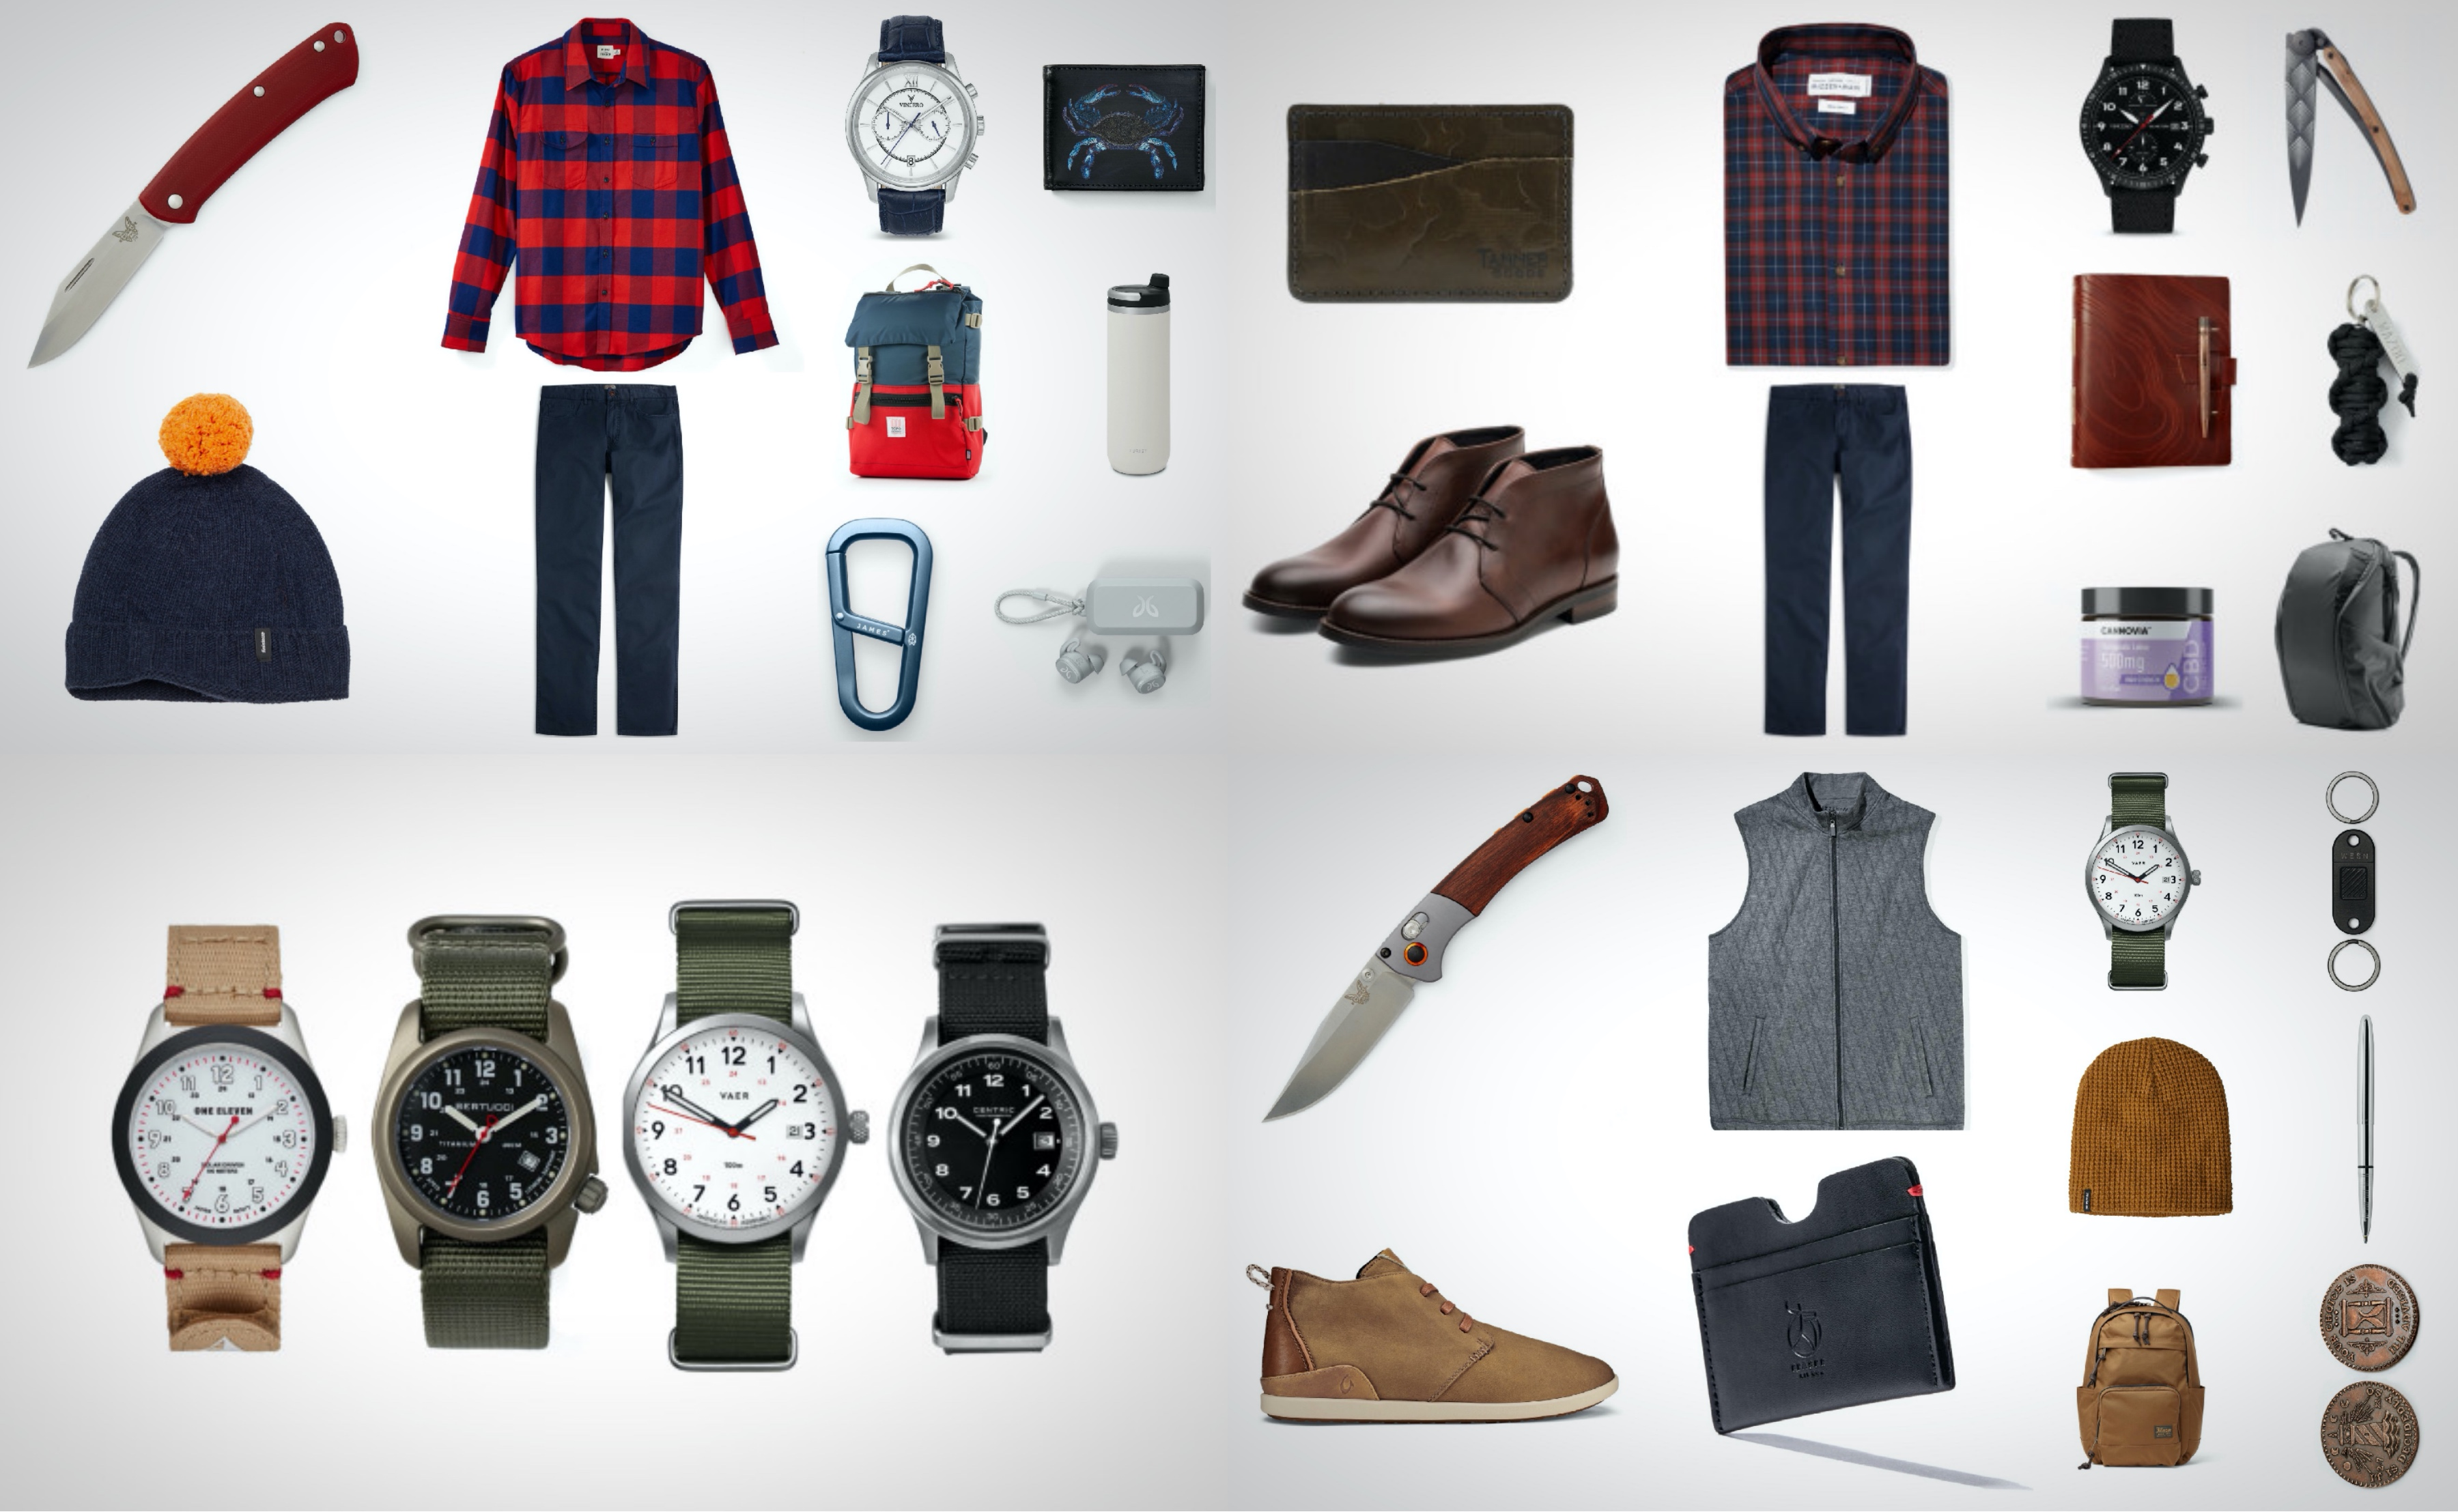 50 Things We Want This Week Edc Gear Watches Boots And More Gifts For Guys Brobible